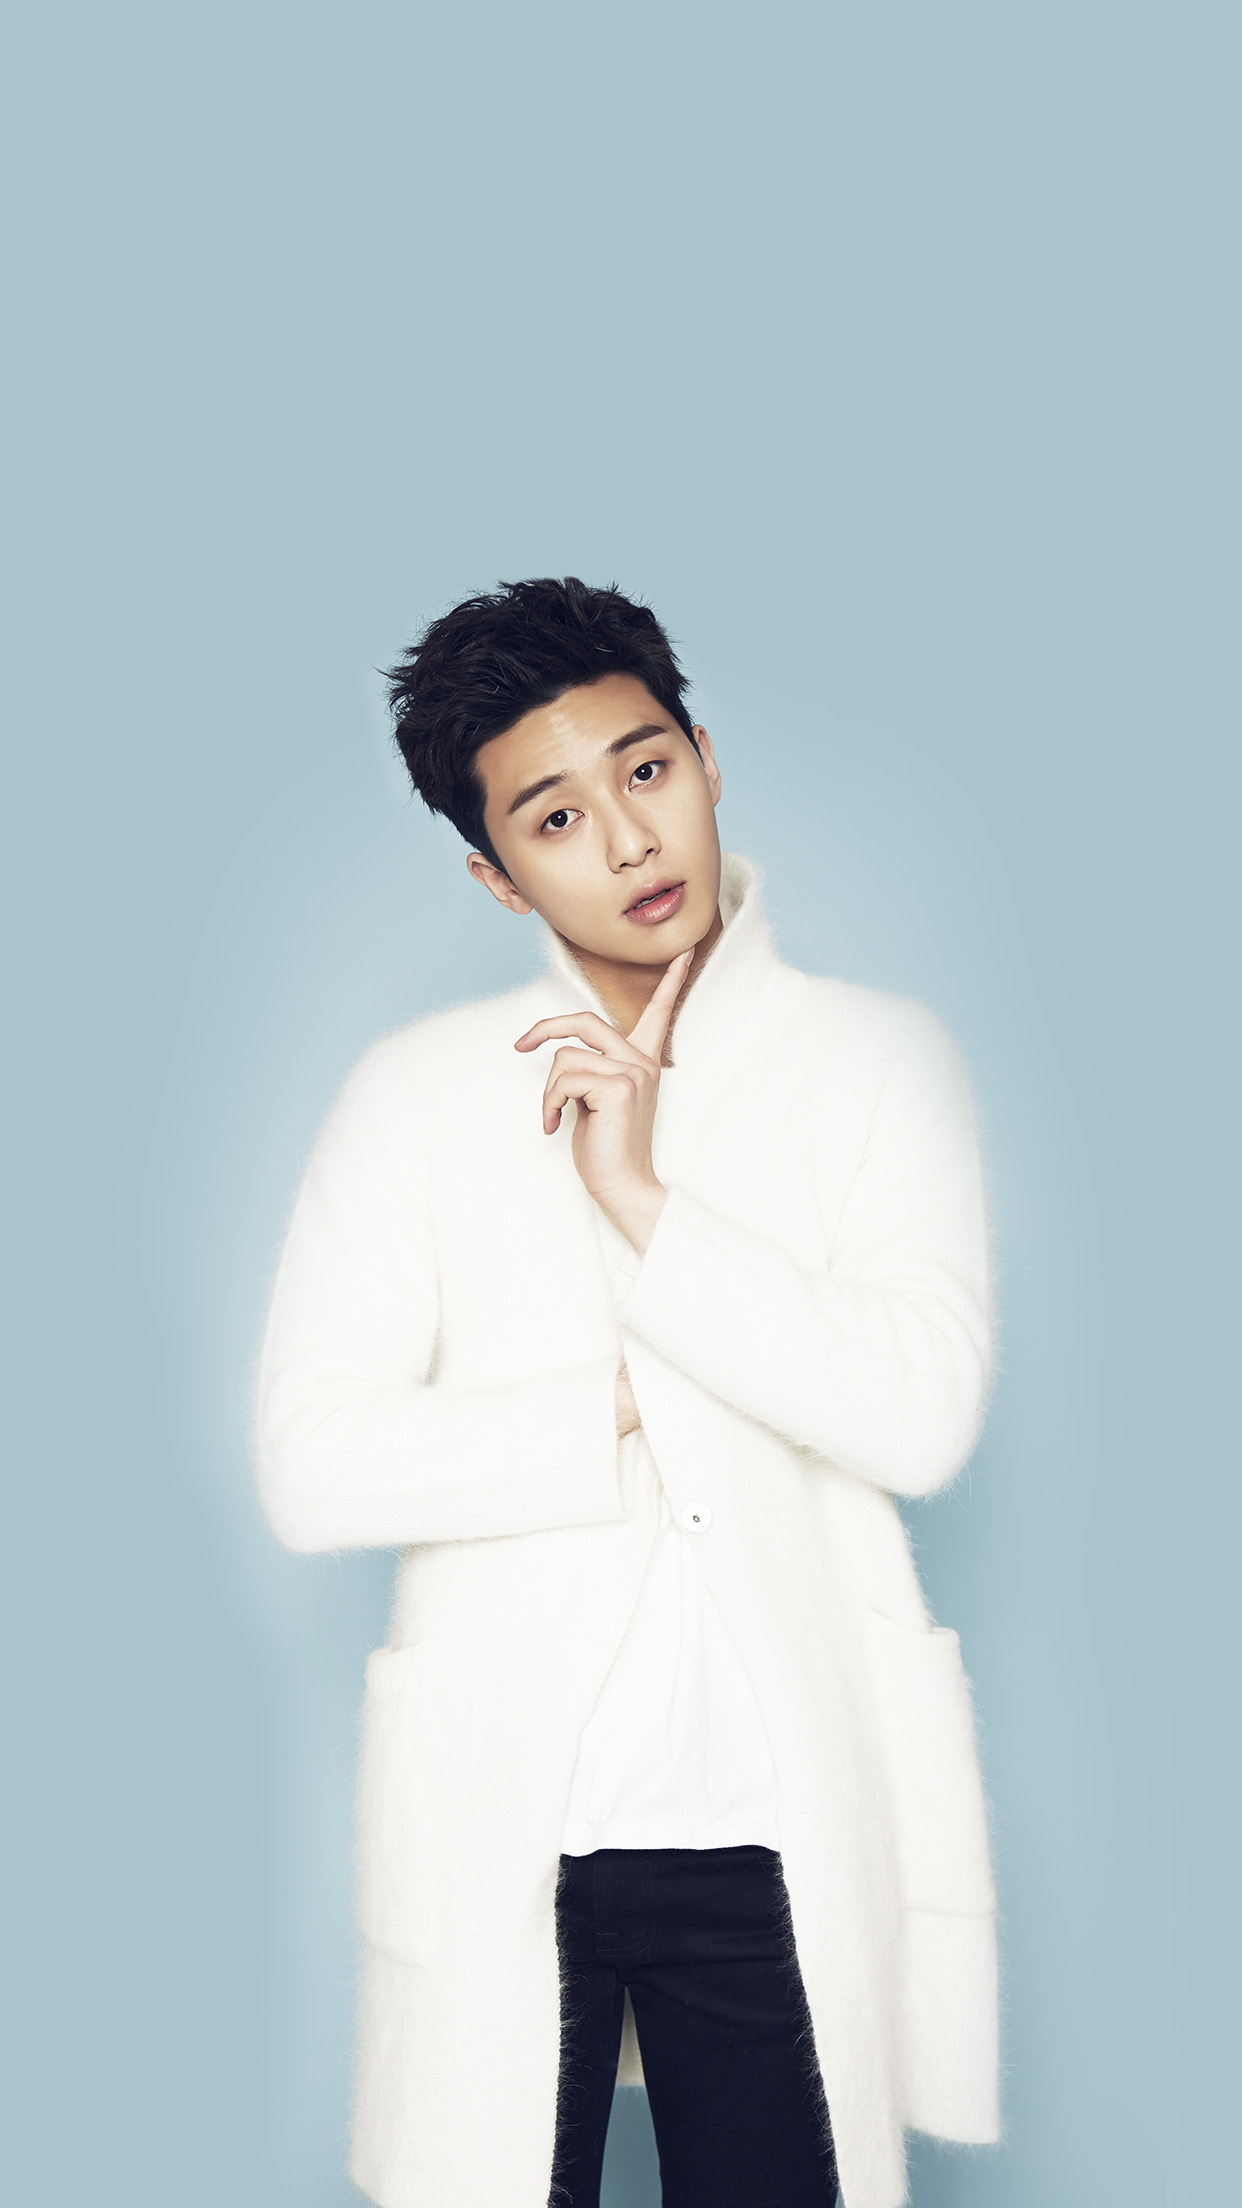 Park Seo Joon Kpop Blue Handsome Cool Guy Android wallpaper 1242x2208